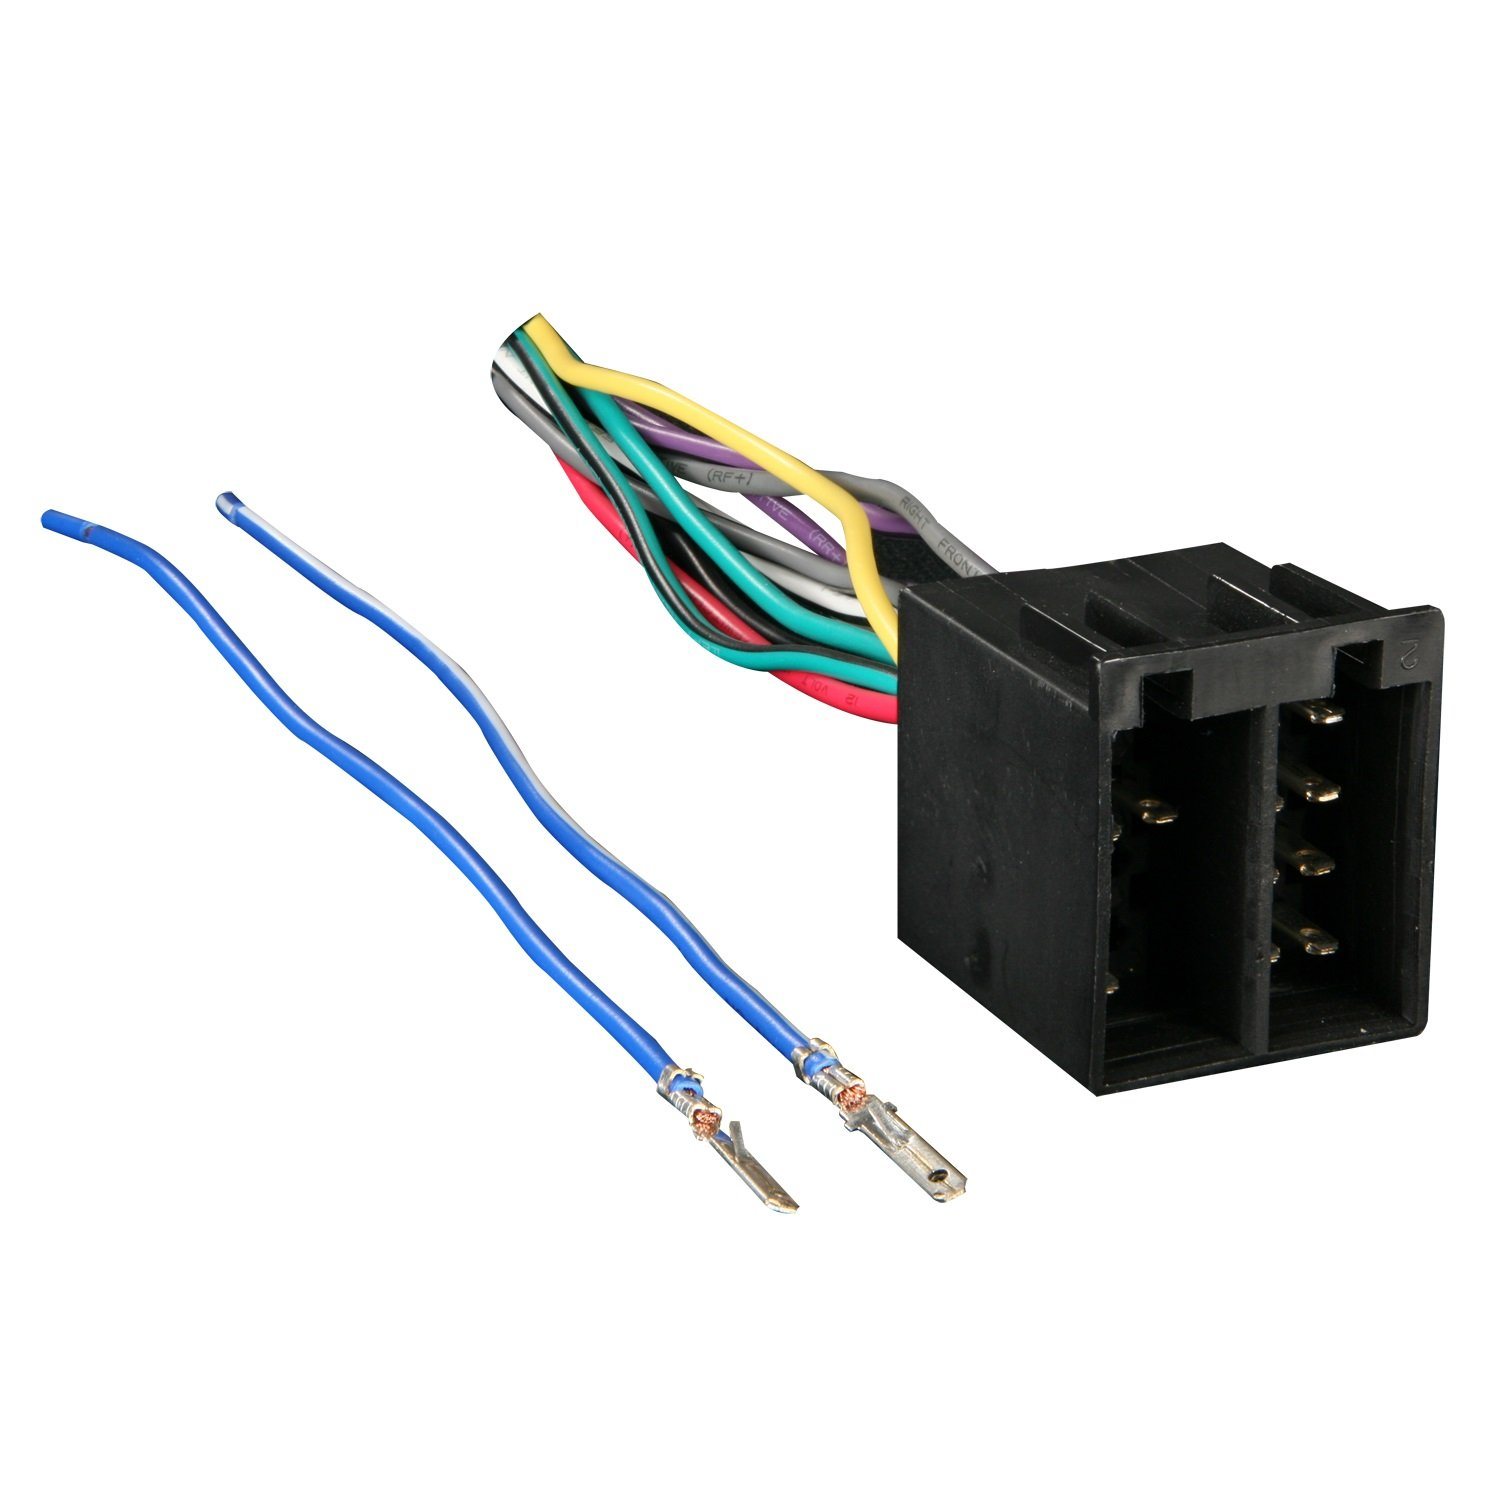 61btua5kg4L._SL1500_ amazon com metra 70 1783 radio wiring harness for smart car car Car Wiring Harness at readyjetset.co